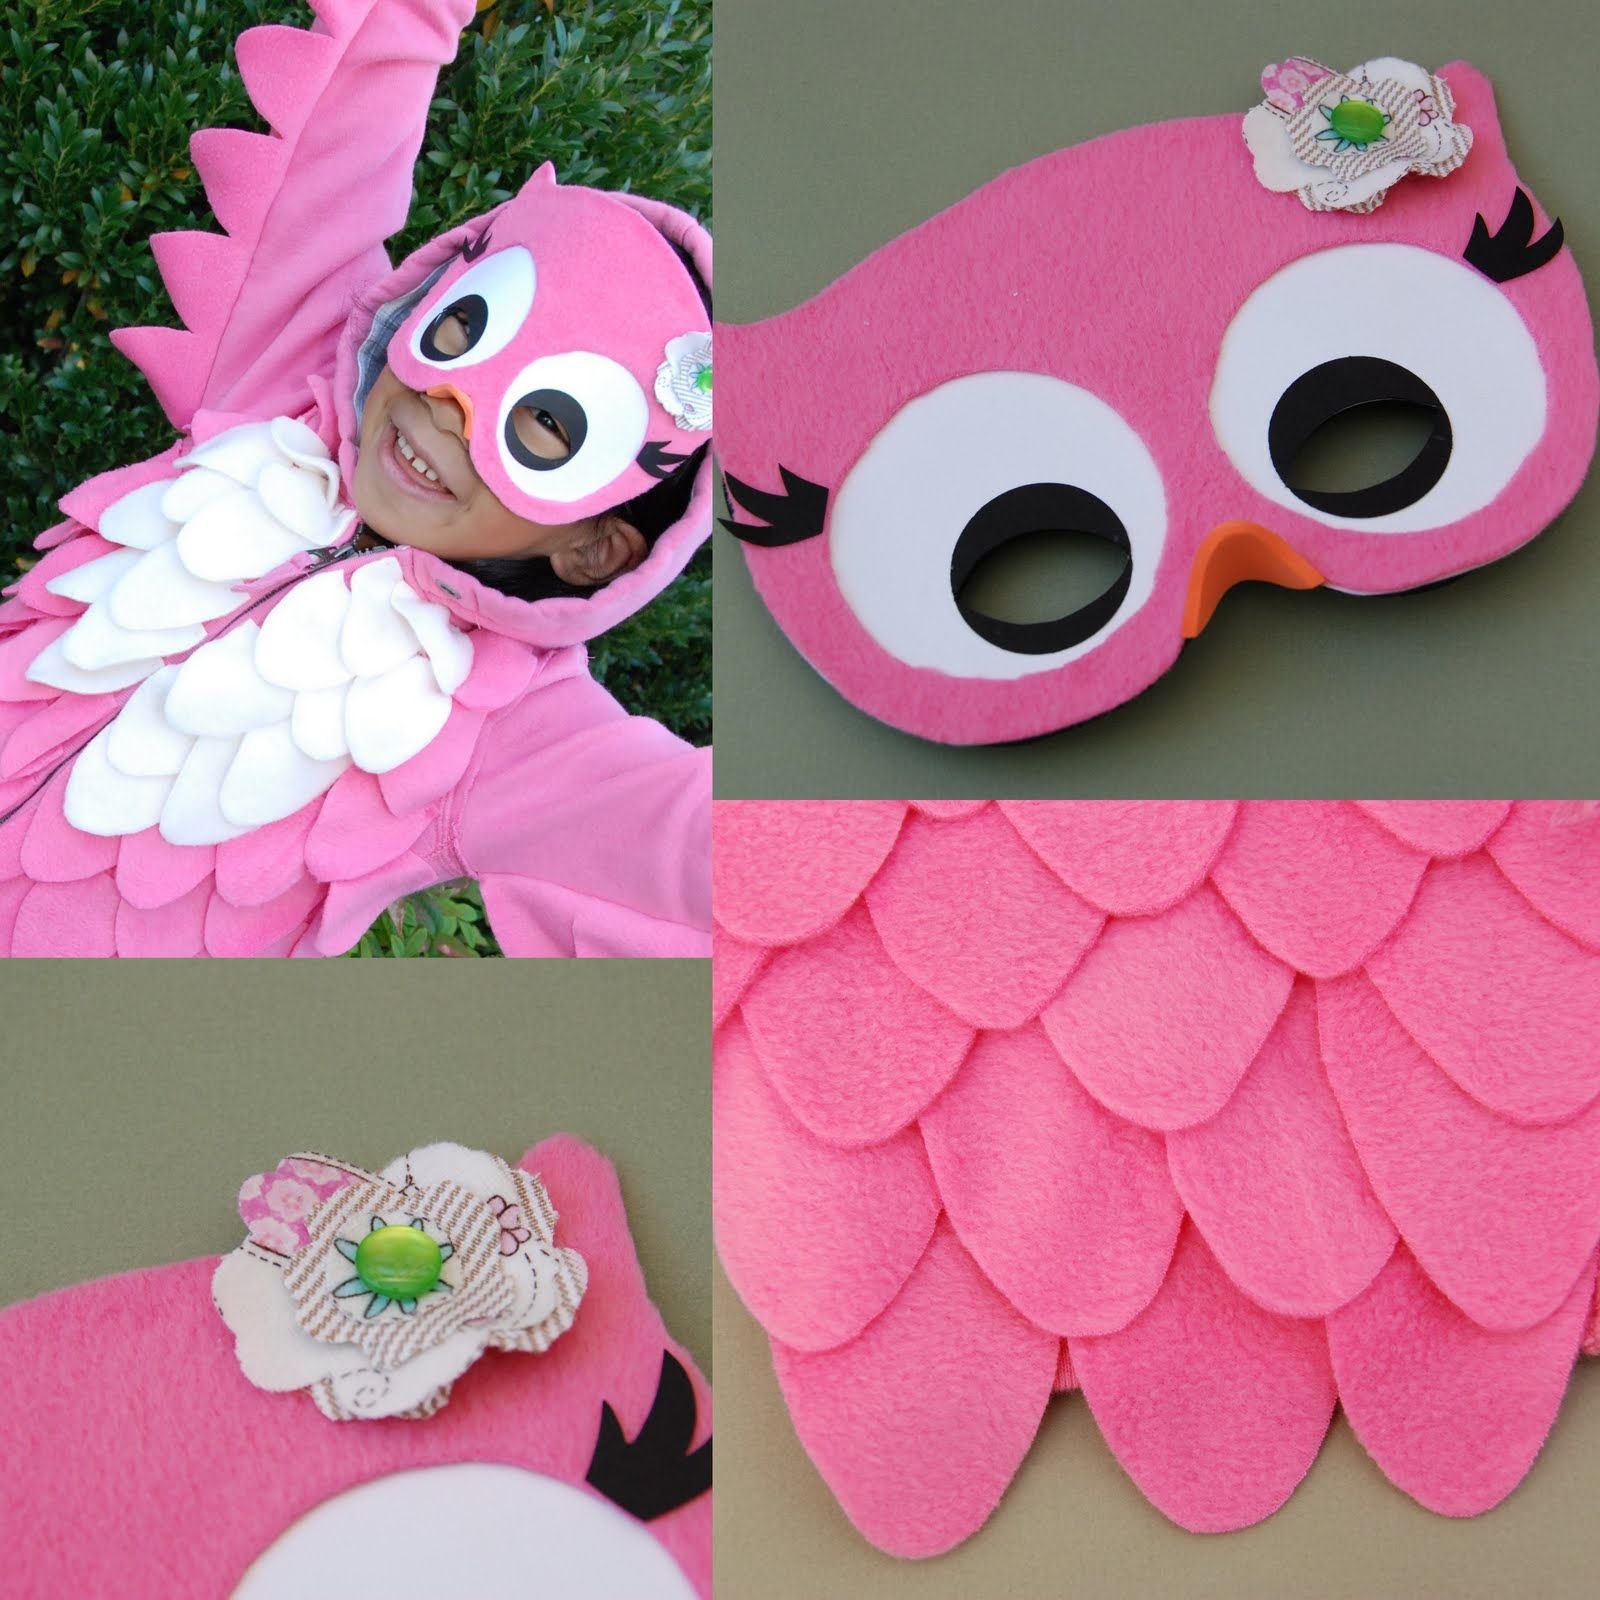 owl costume owls pinterest diy eule kost m und selfmade. Black Bedroom Furniture Sets. Home Design Ideas